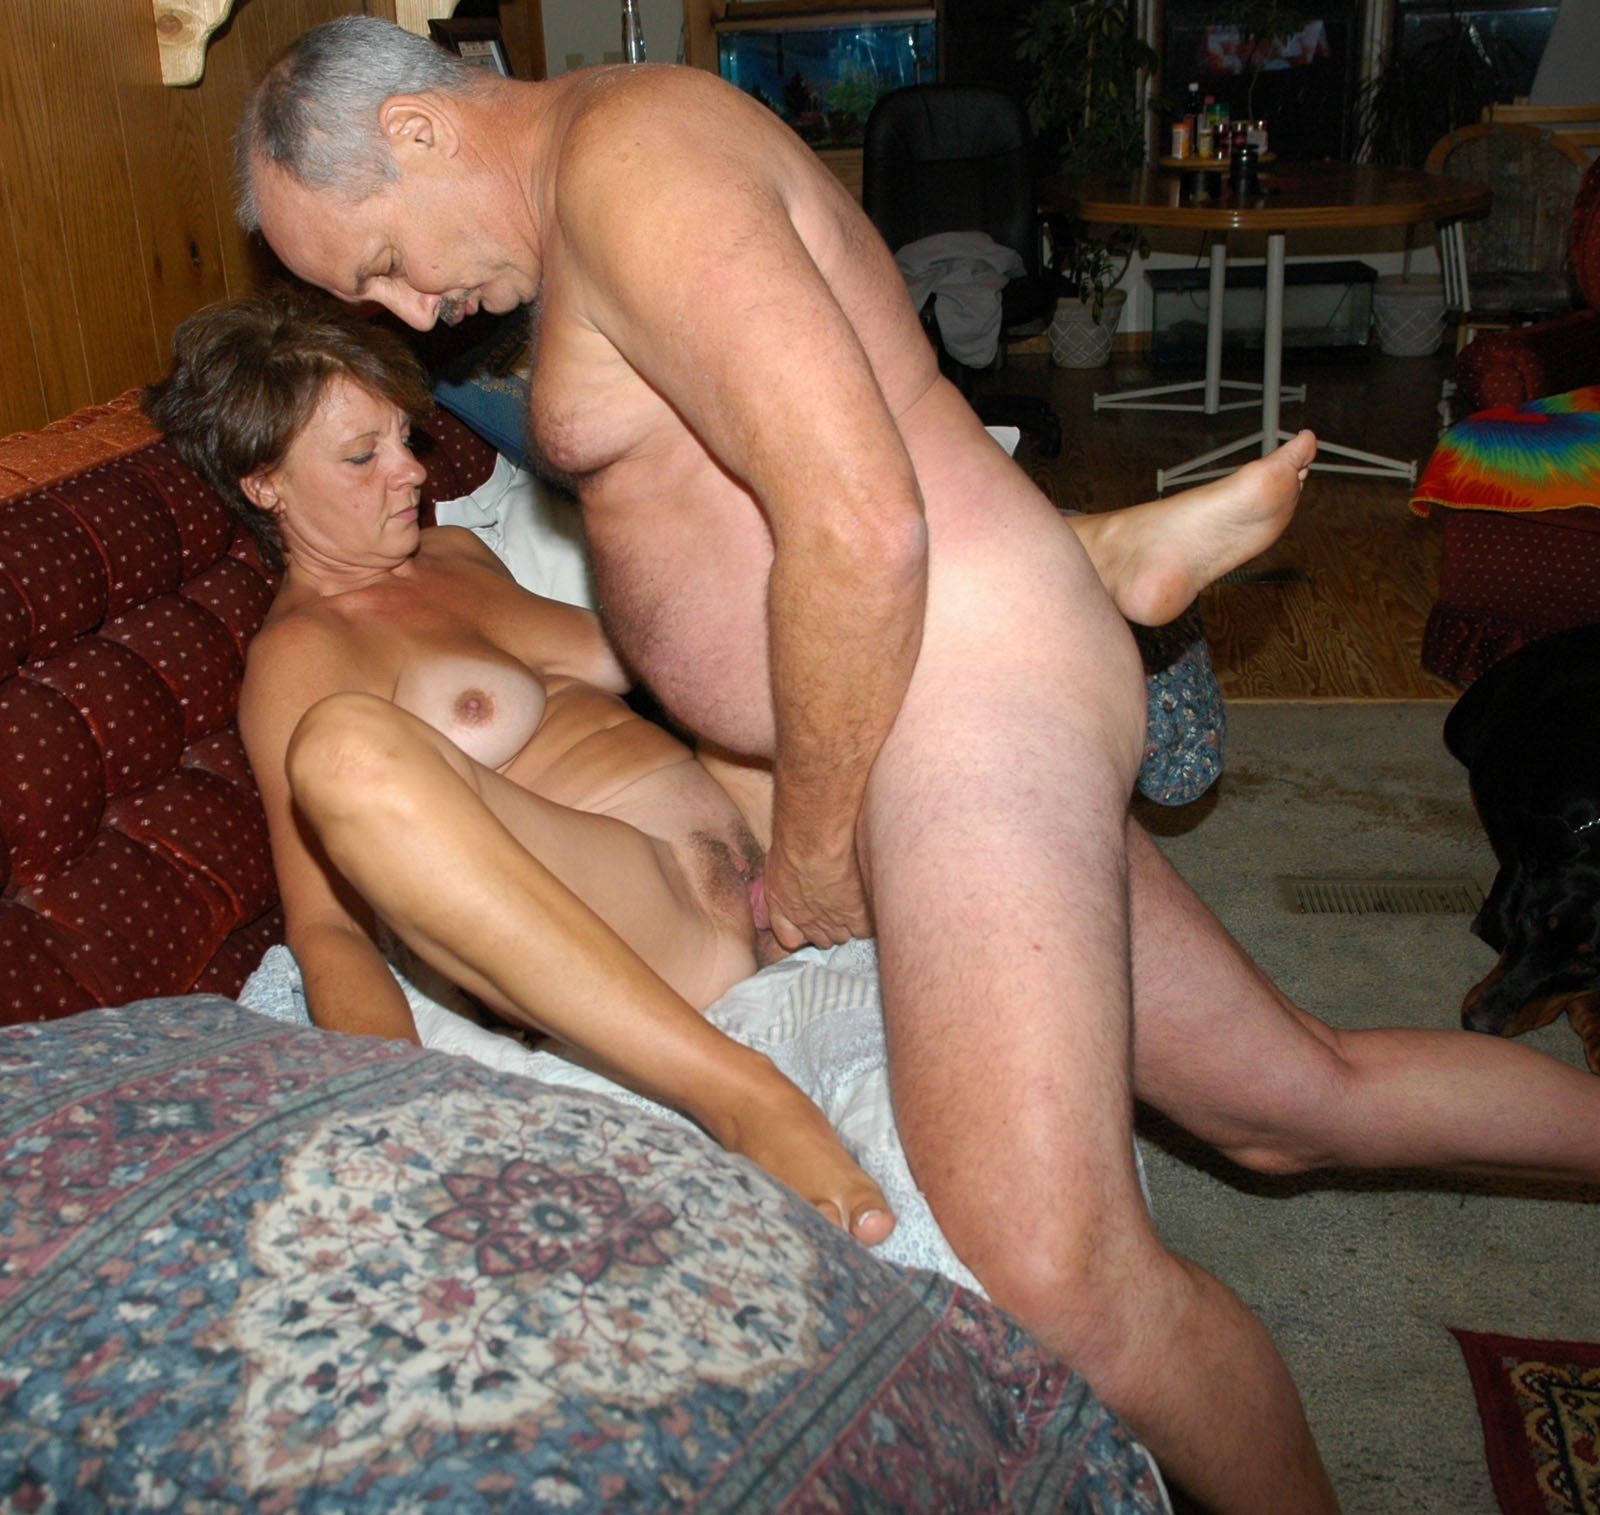 Amateurs making love at home photos